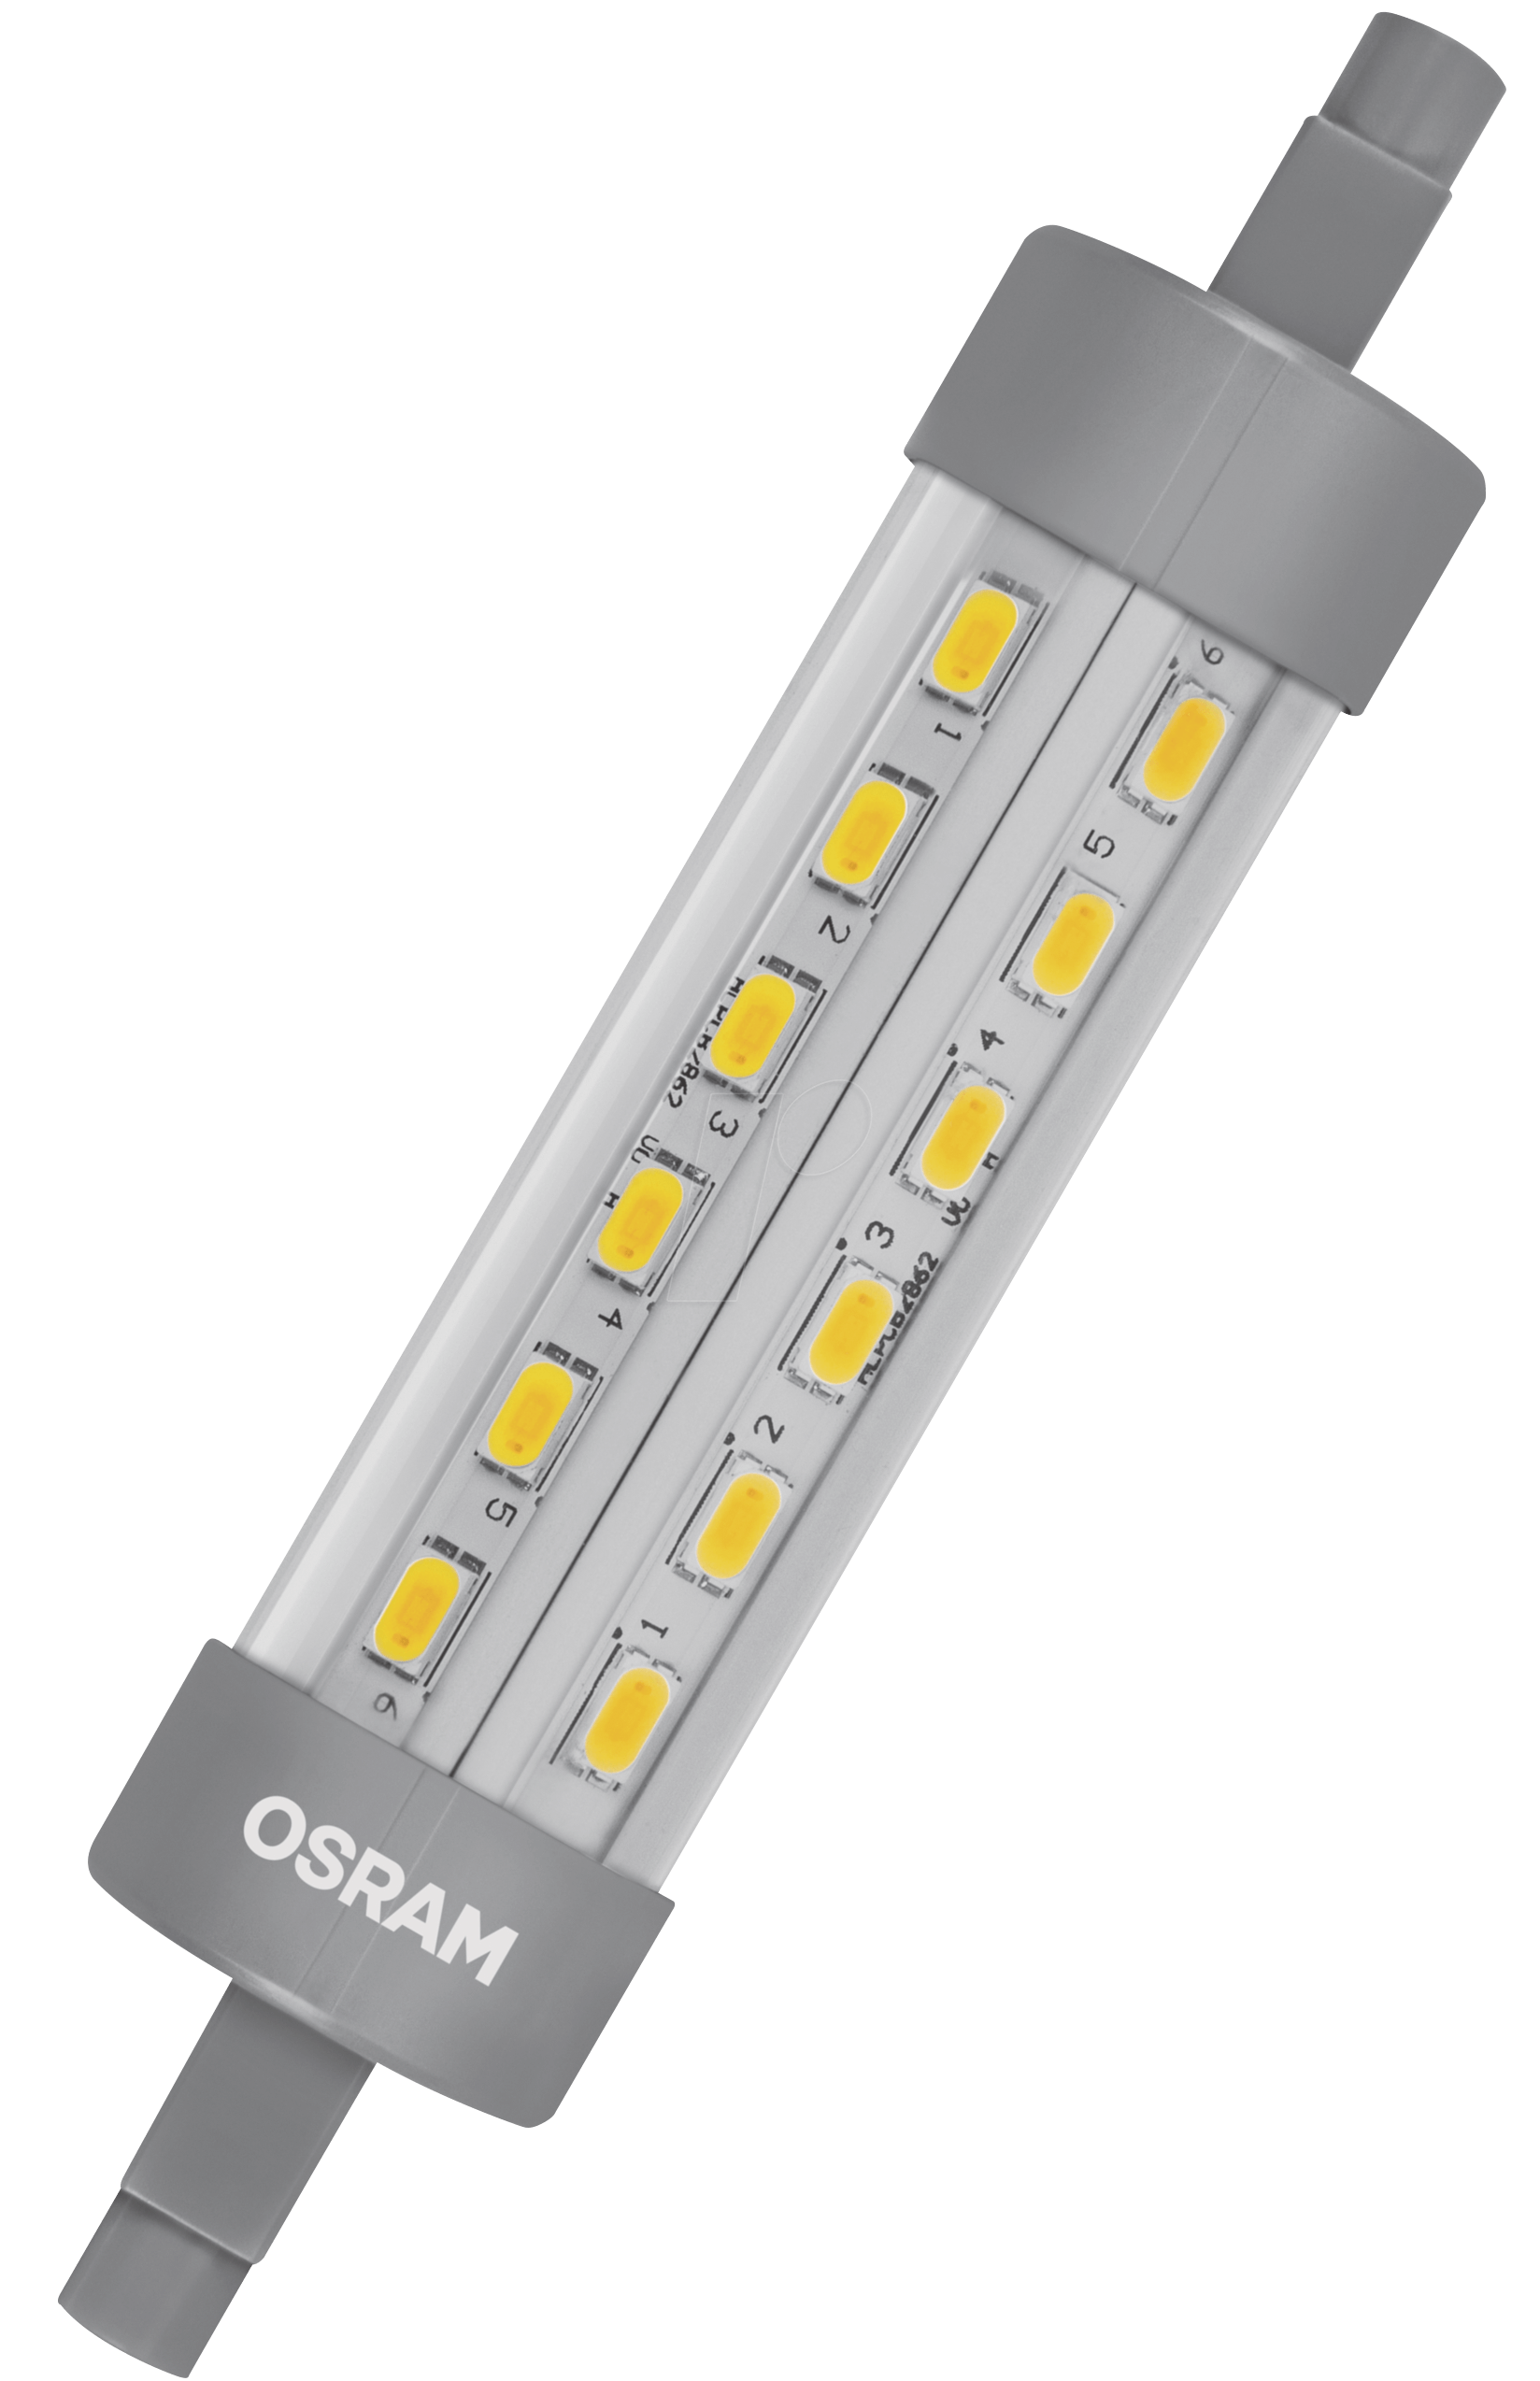 osram led superstar special line mit r7s sockel dimmbar ersetzt 125 watt 118 mm l nge klar. Black Bedroom Furniture Sets. Home Design Ideas